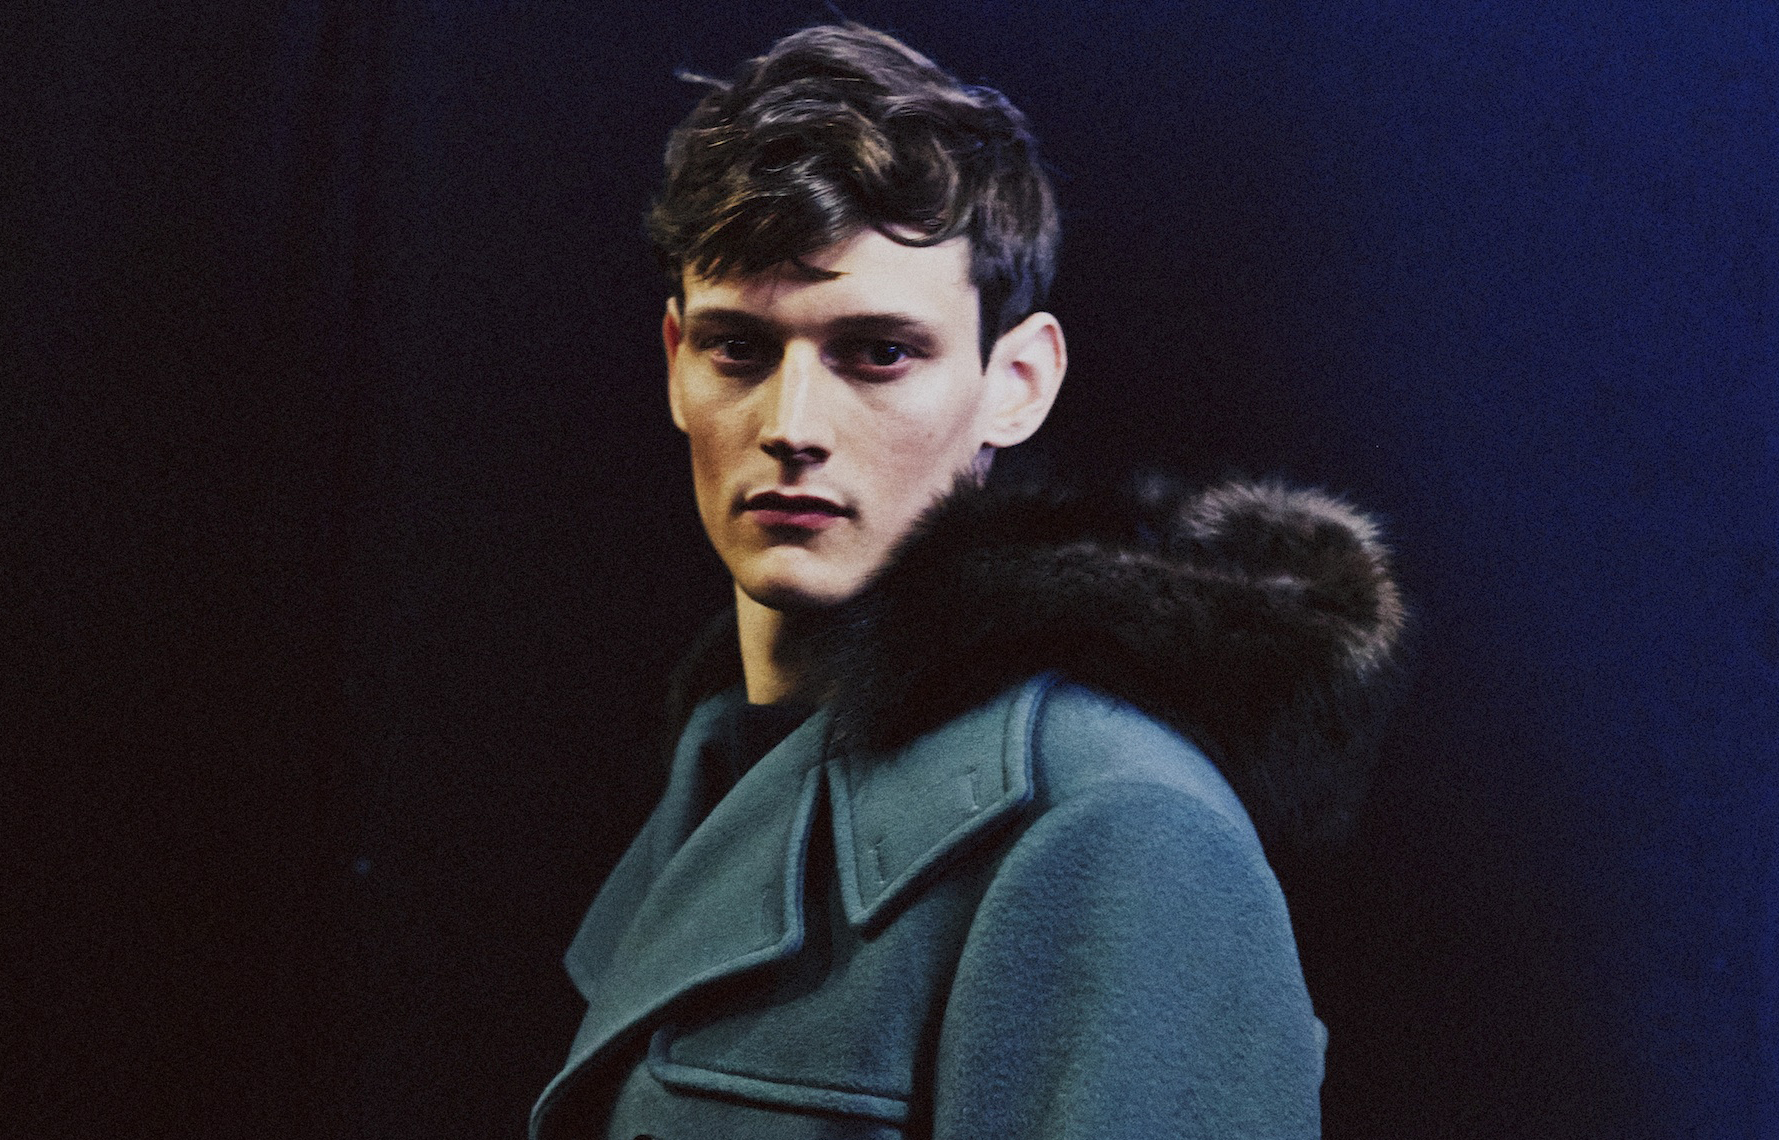 33 LCM AW14 HERO 44 MAGAZINE SALVATORE FERRAGAMO BACKSTAGE HARRY CARR FW14 Look